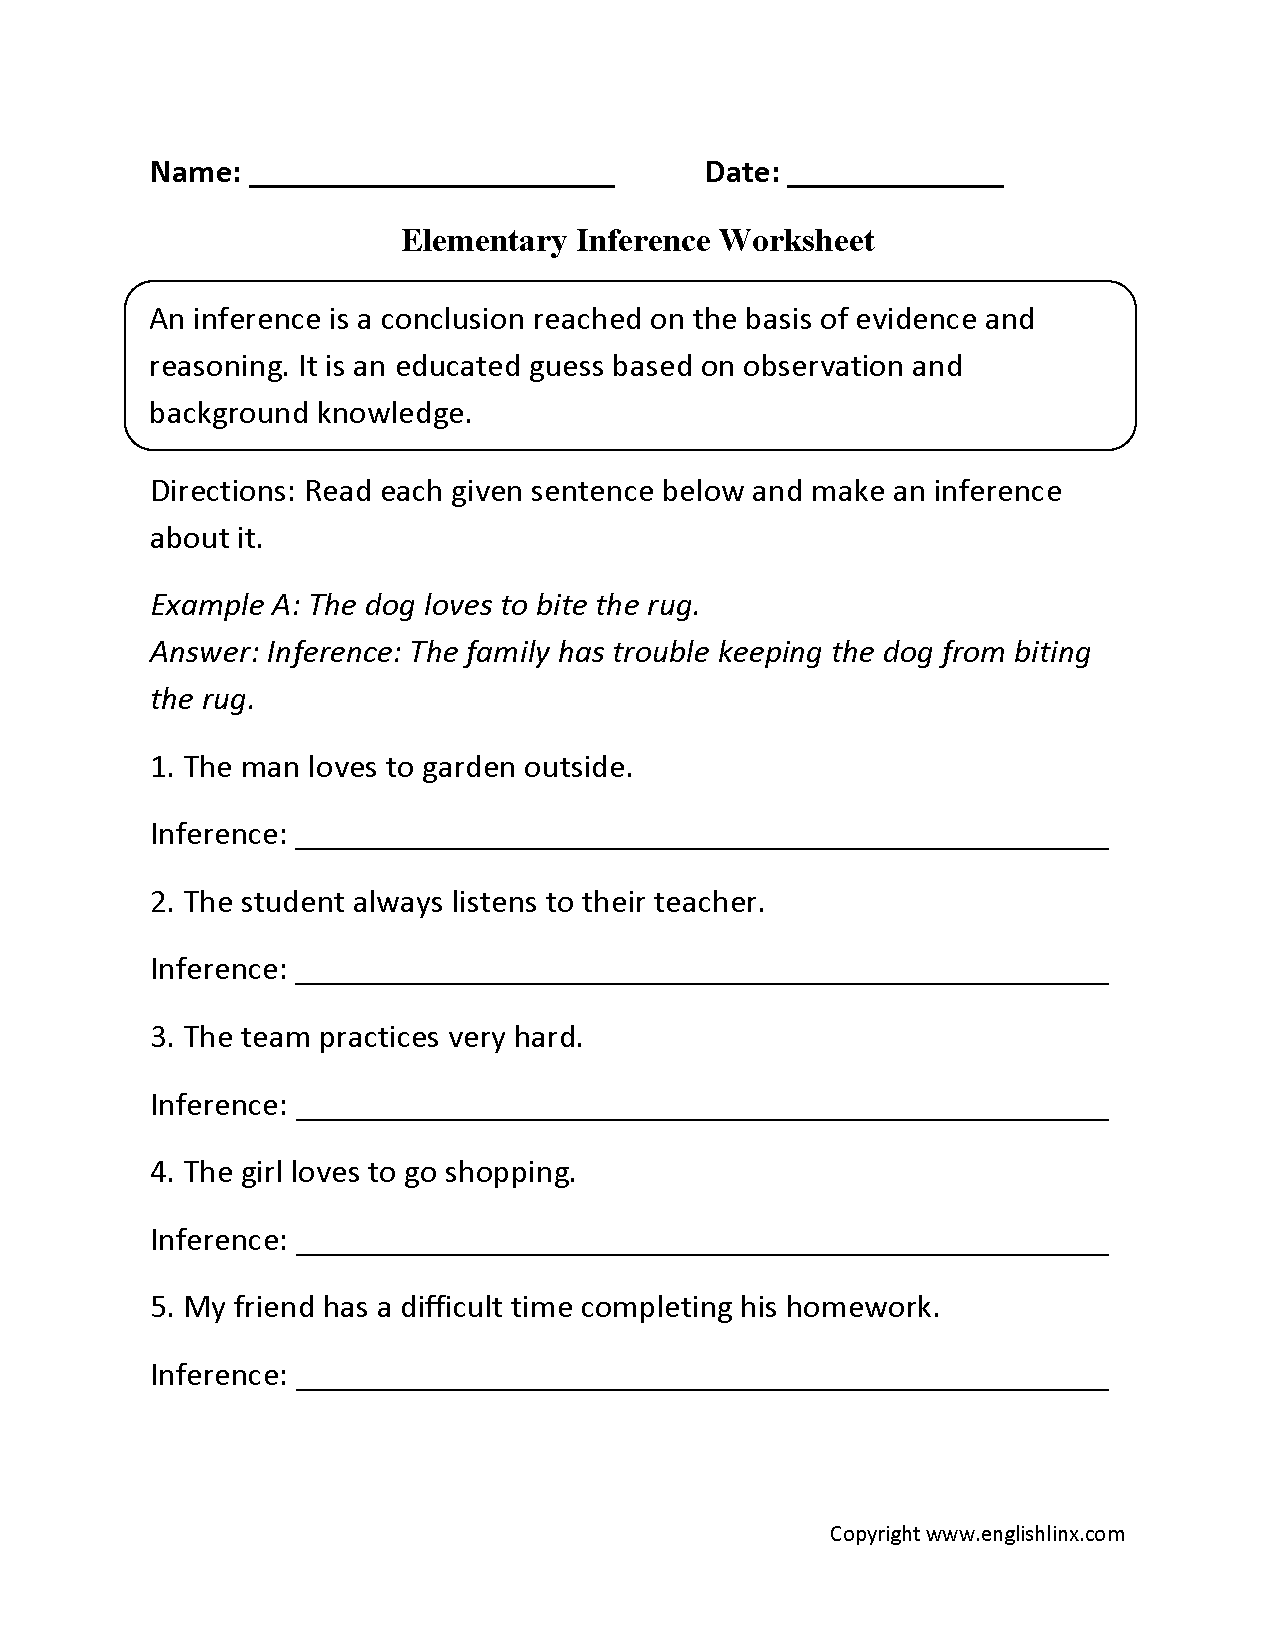 Elementary Inference Worksheets Inference – Making Inferences Worksheet